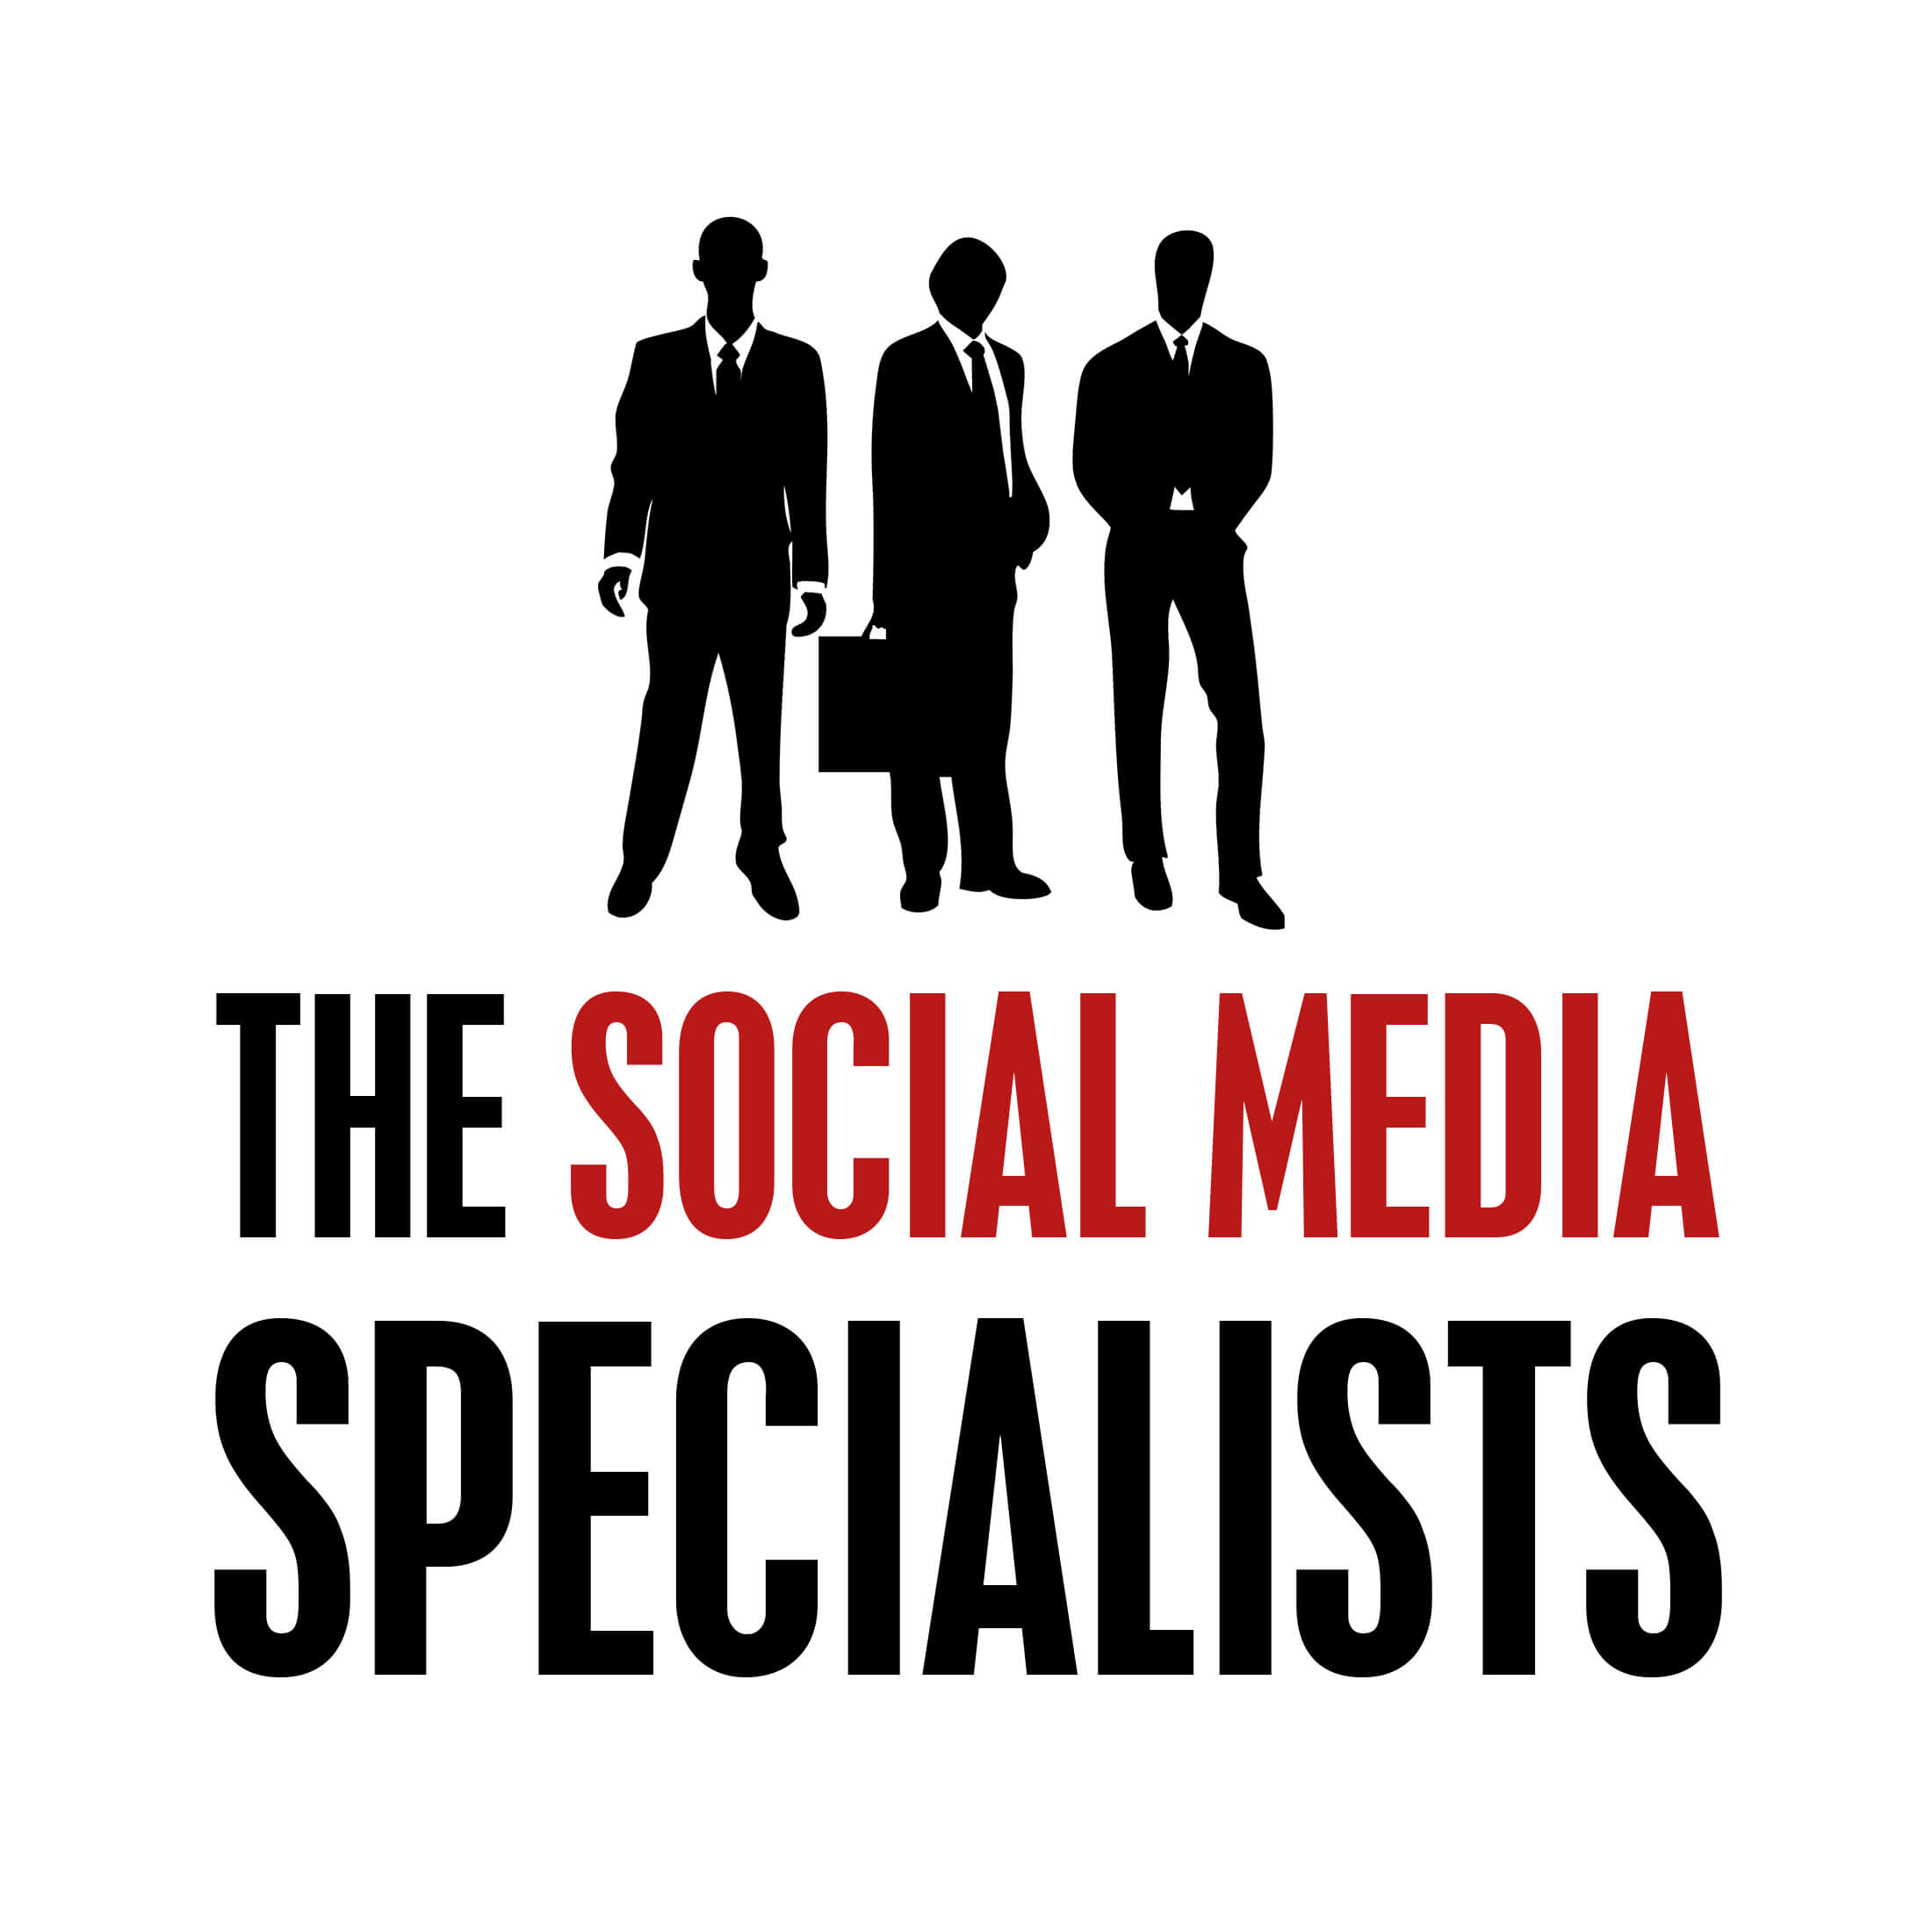 The Social Media Specialists, a chatbot developer